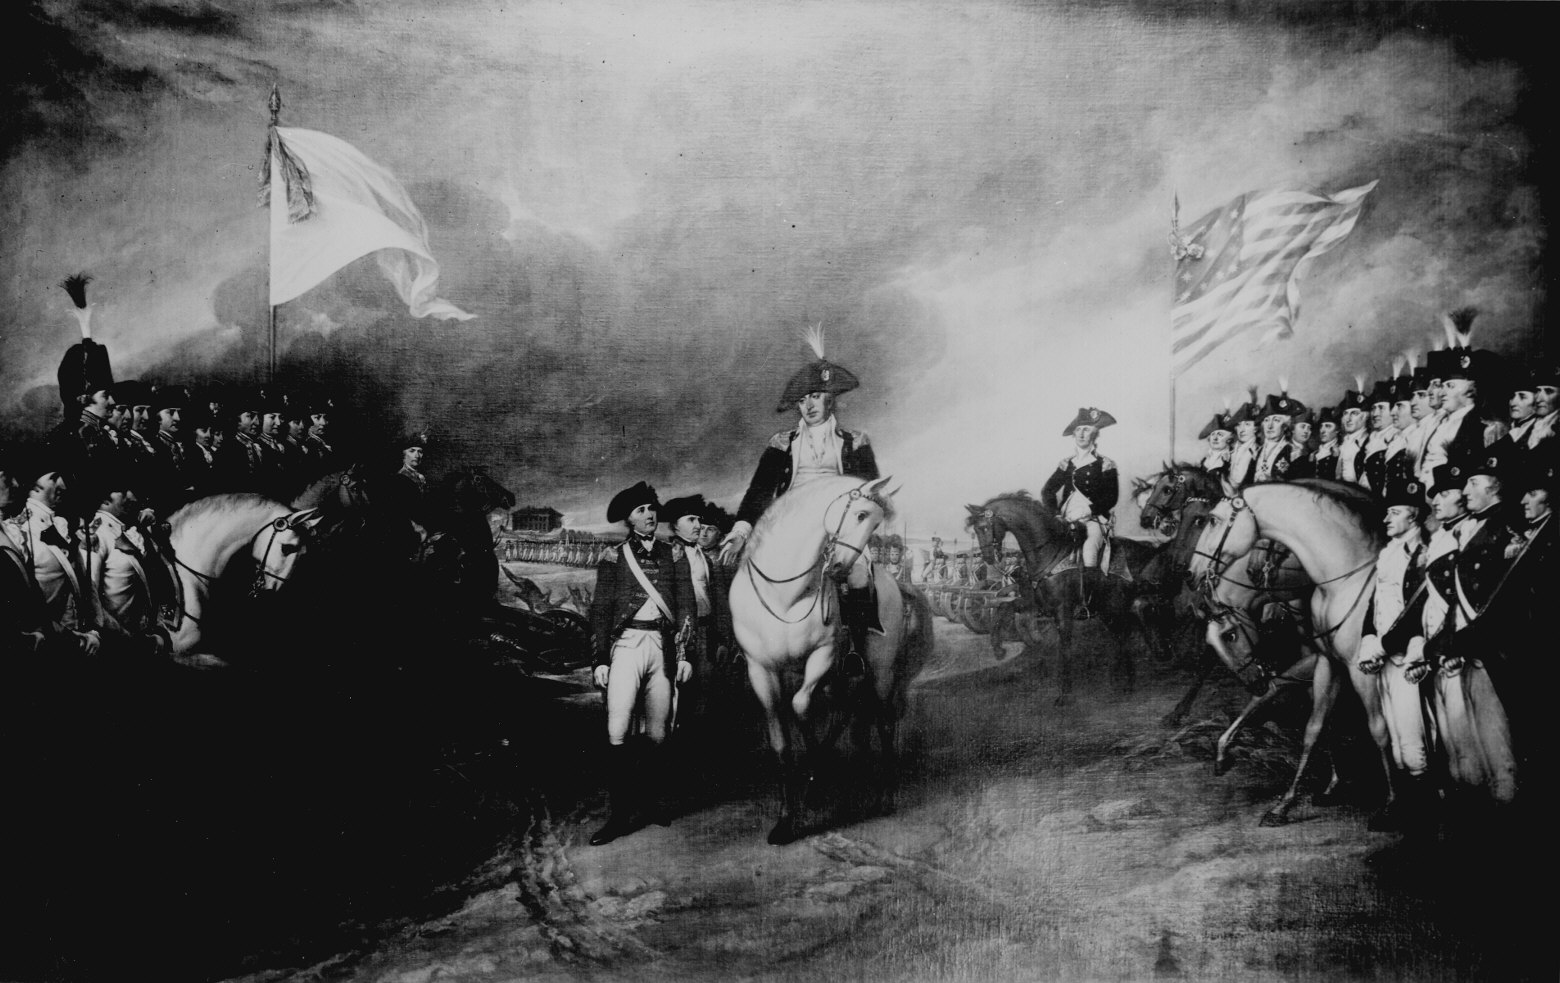 second american revolution civil war essay To a certain extent it is accurate to call the american revolution a civil war the colonists were under british control at the time, between regions of it becomes a war between two nation states within the colonies, revolutionaries were not only fighting against the british but also with the loyalists who.